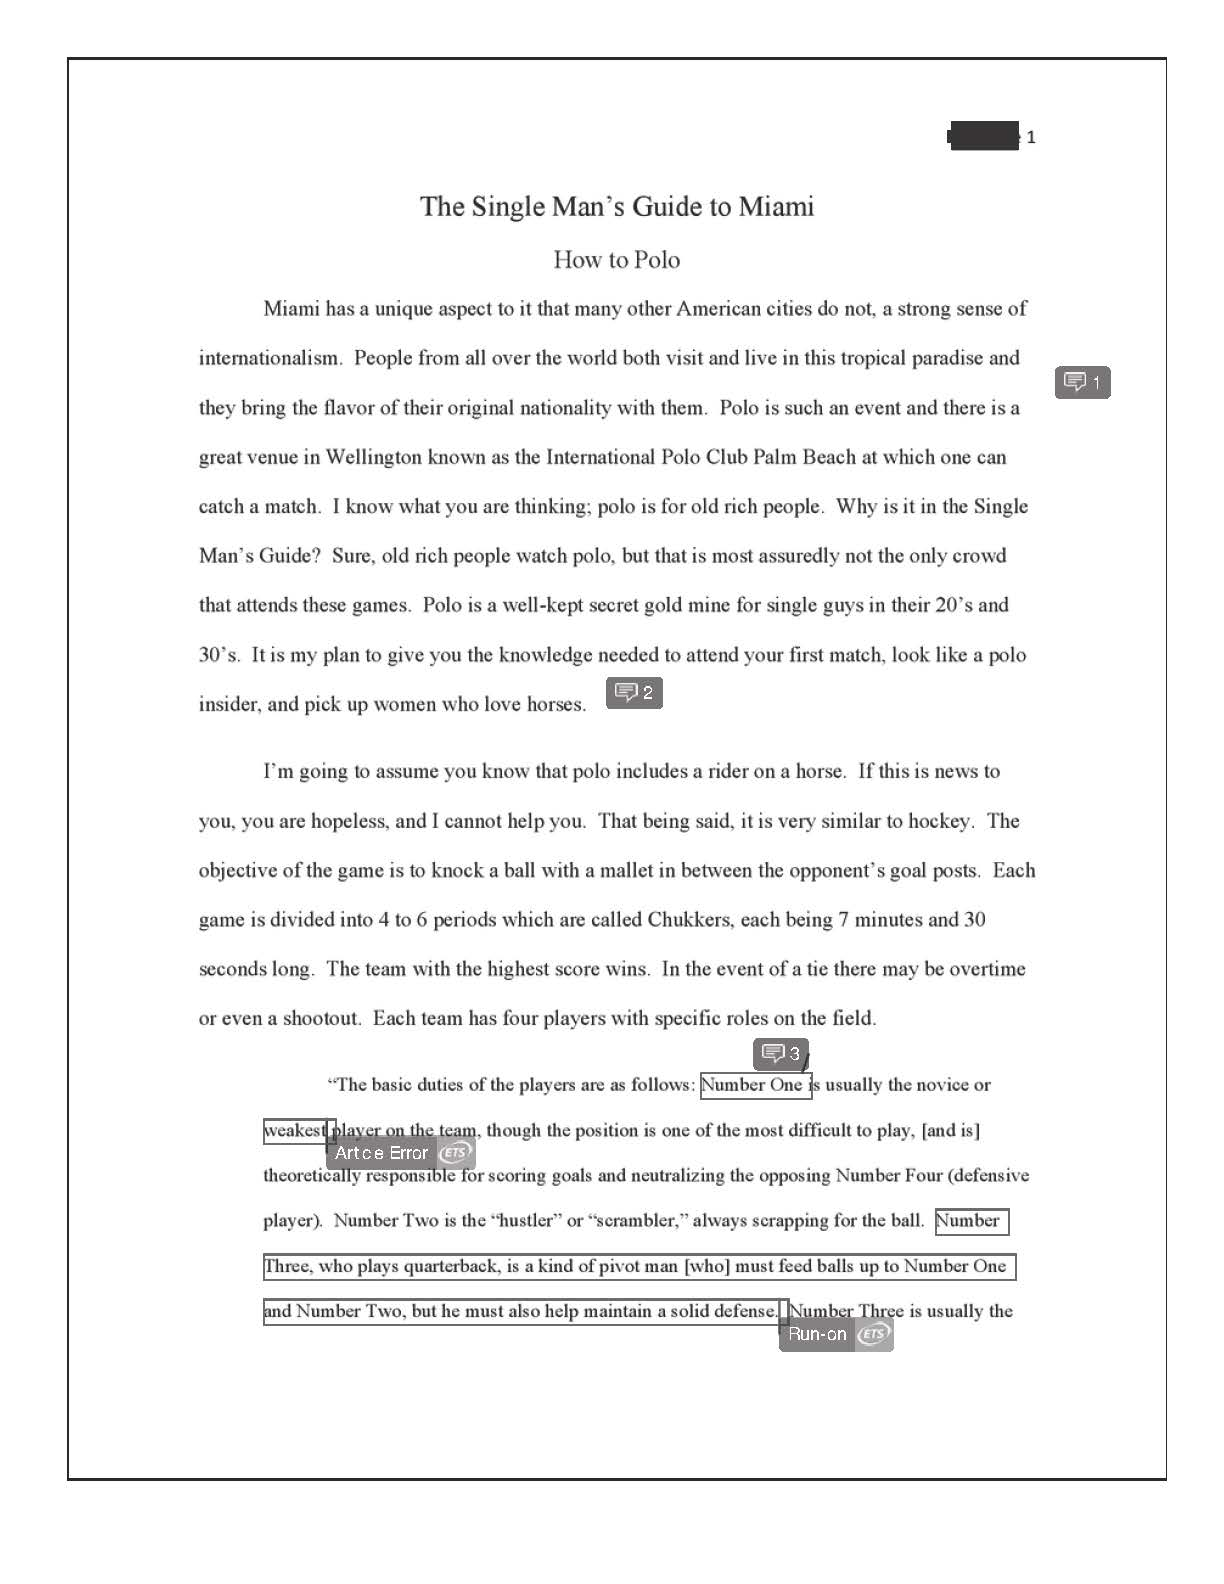 006 Informative Essay Final How To Polo Redacted Page 2 Example Outstanding Definition Full